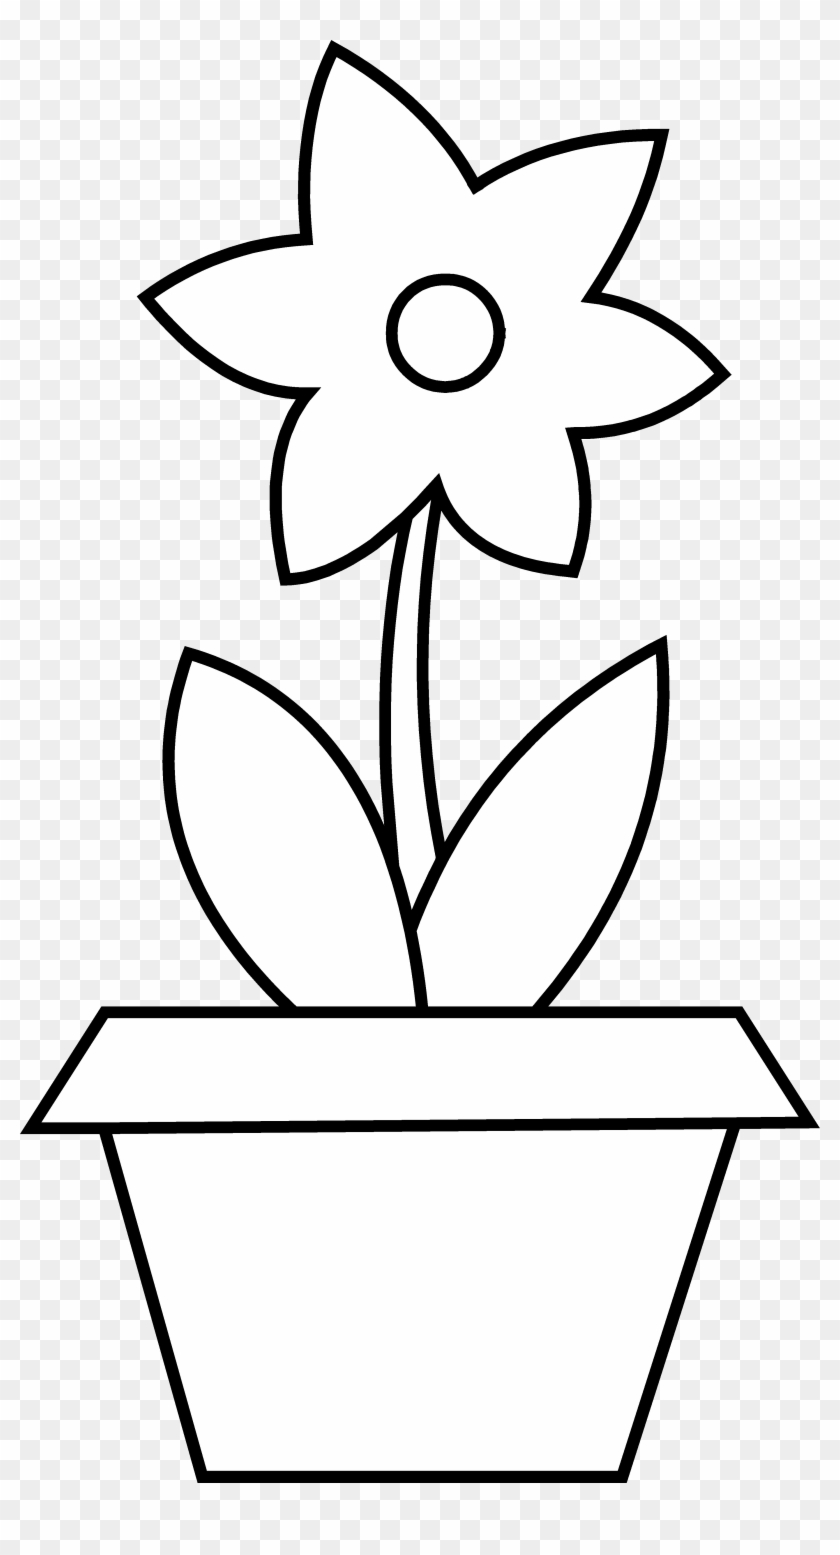 Plant Clipart Colouring - Colouring Pages Of Flower Pot - Free ...